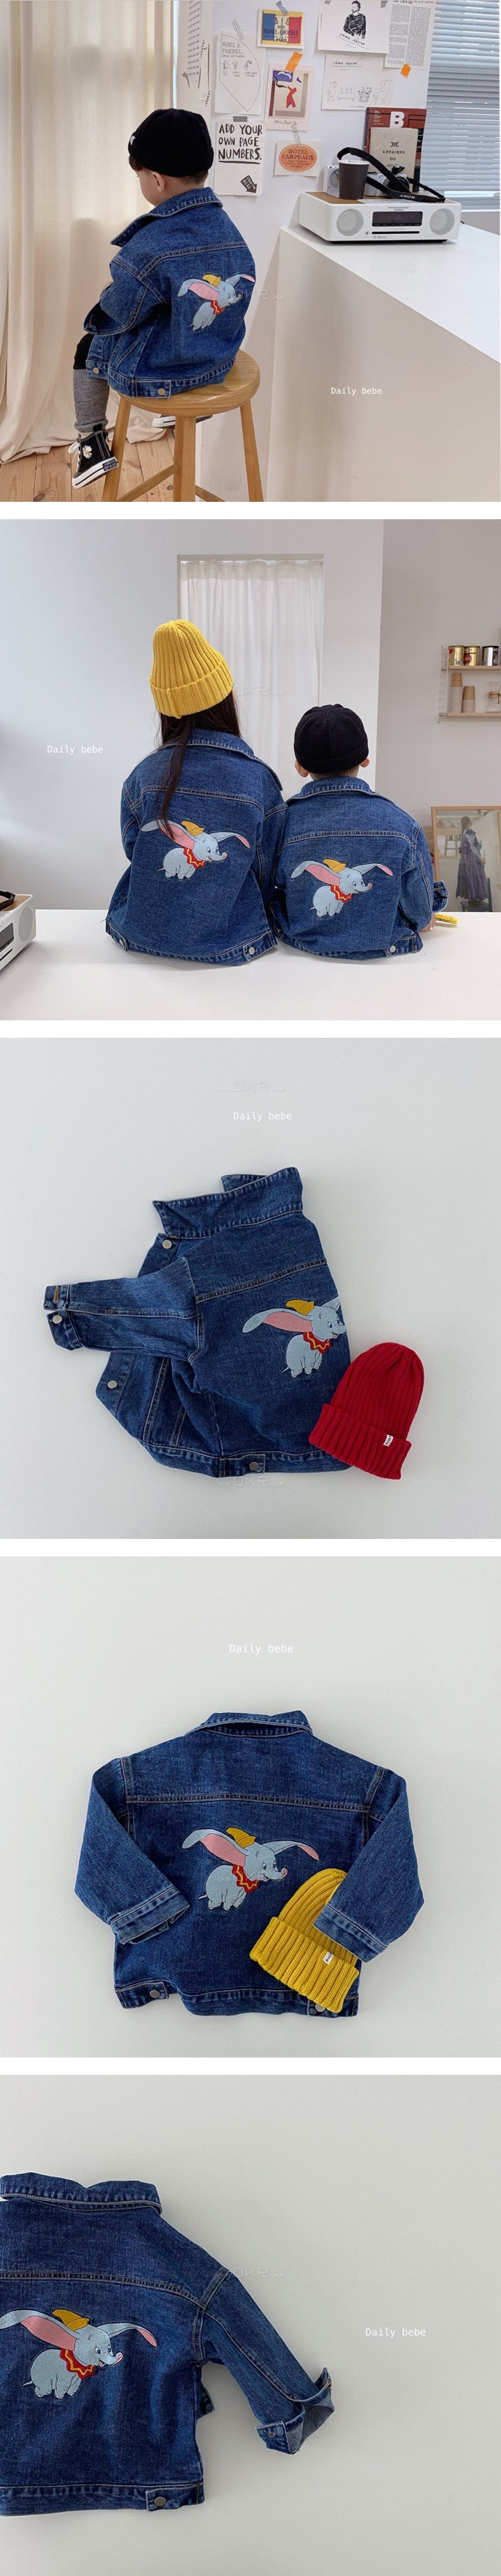 DAILY BEBE - Korean Children Fashion - #Kfashion4kids - Dumbo Denim Jacket